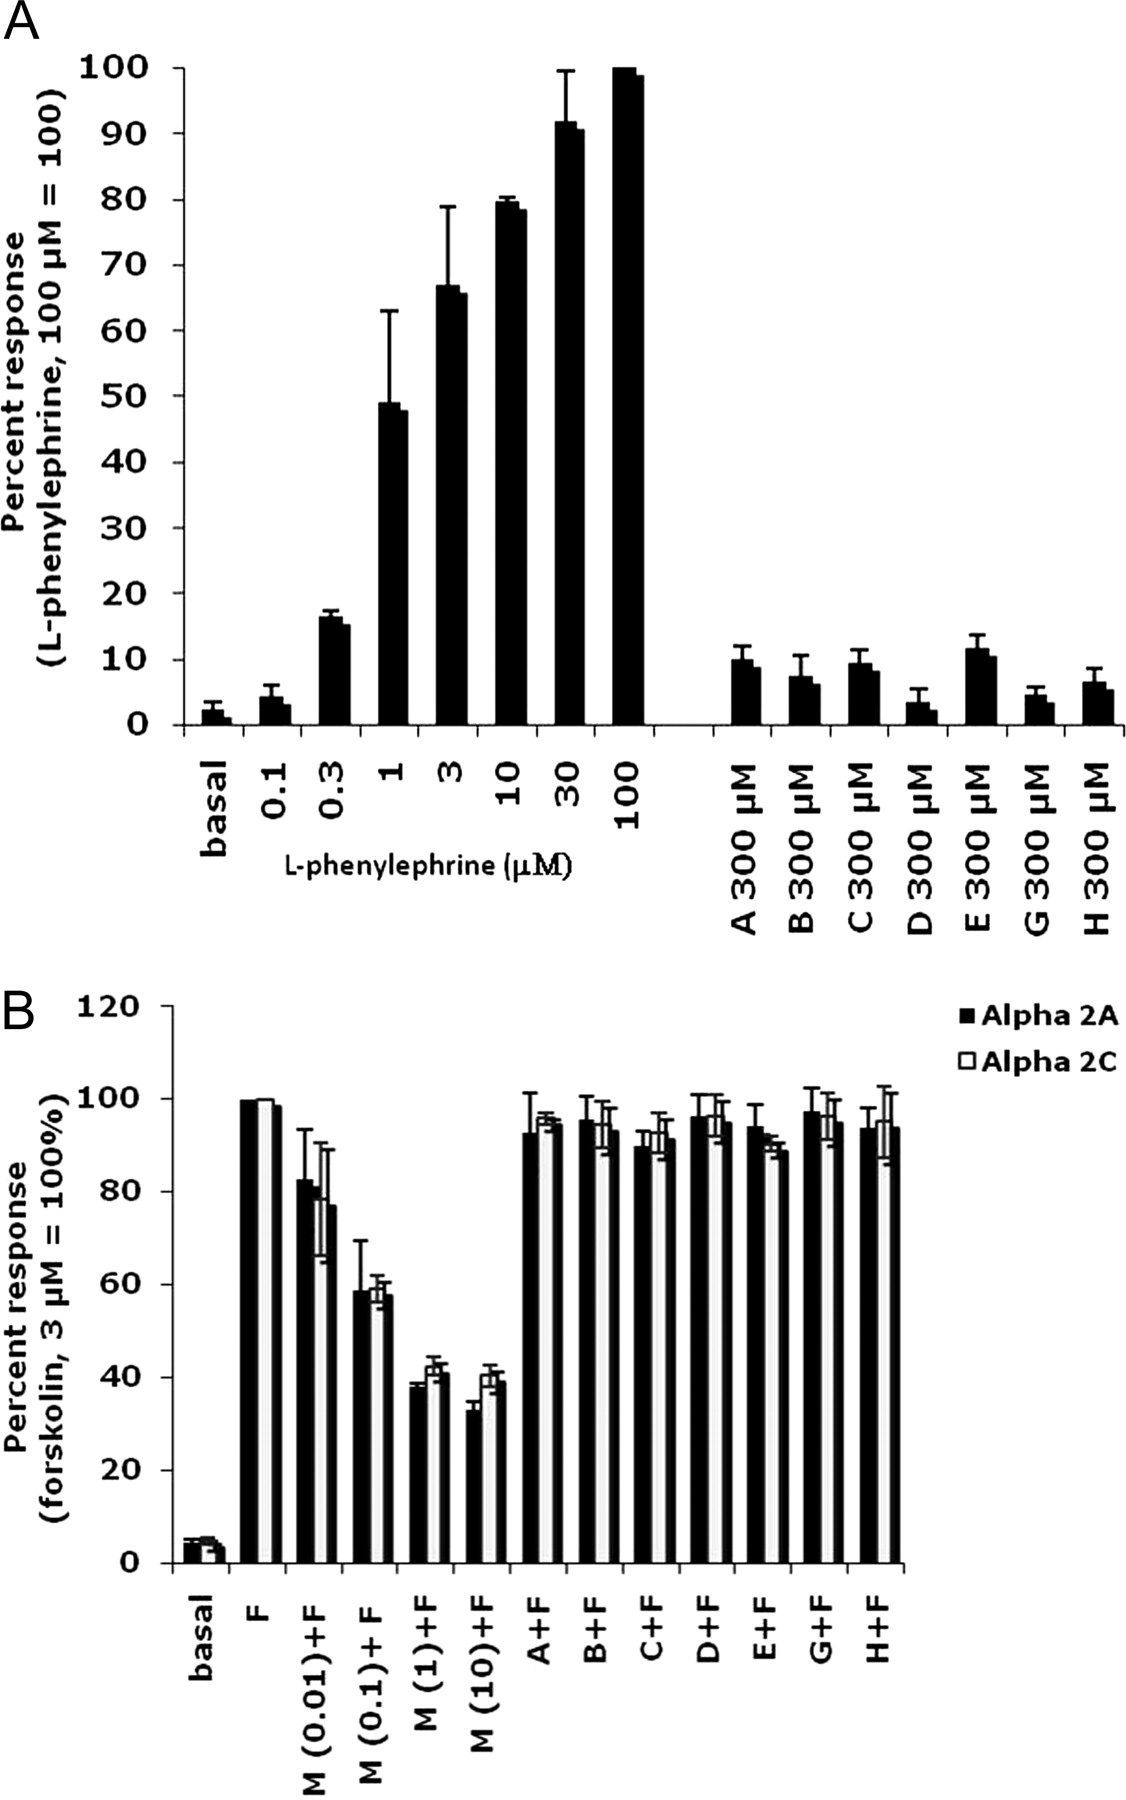 Pharmacological Effects of Ephedrine Alkaloids on Human α1